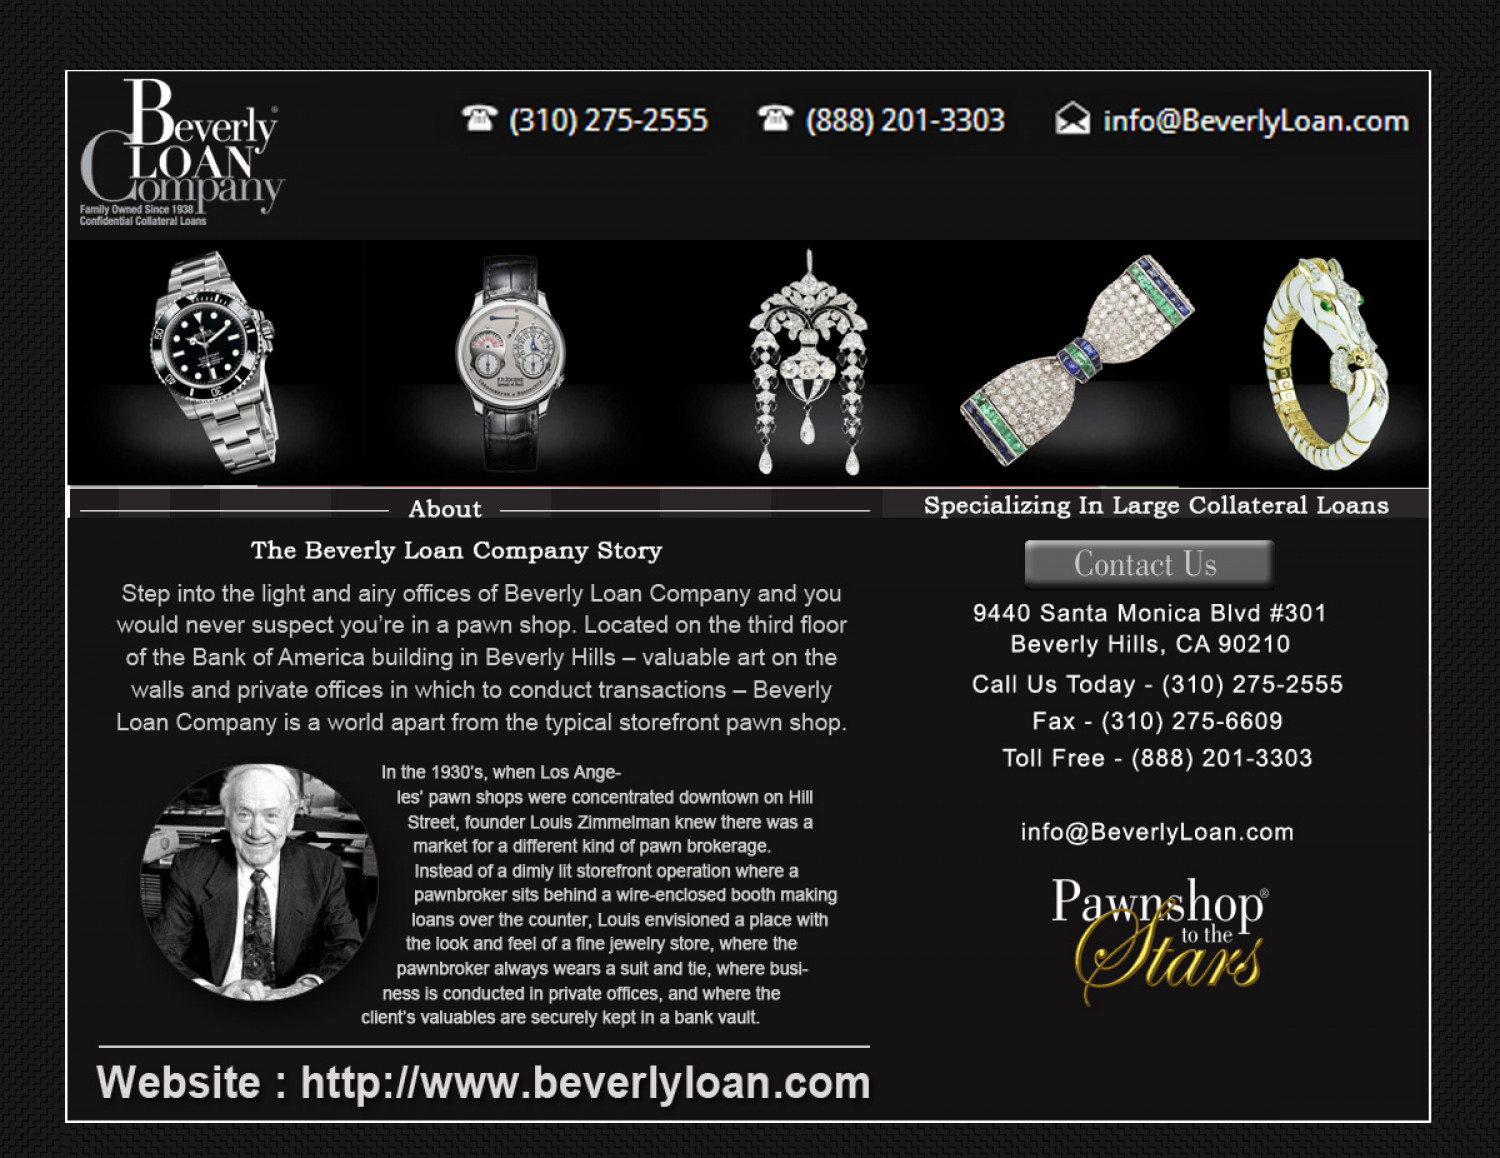 Beverly Loan Company Infographic